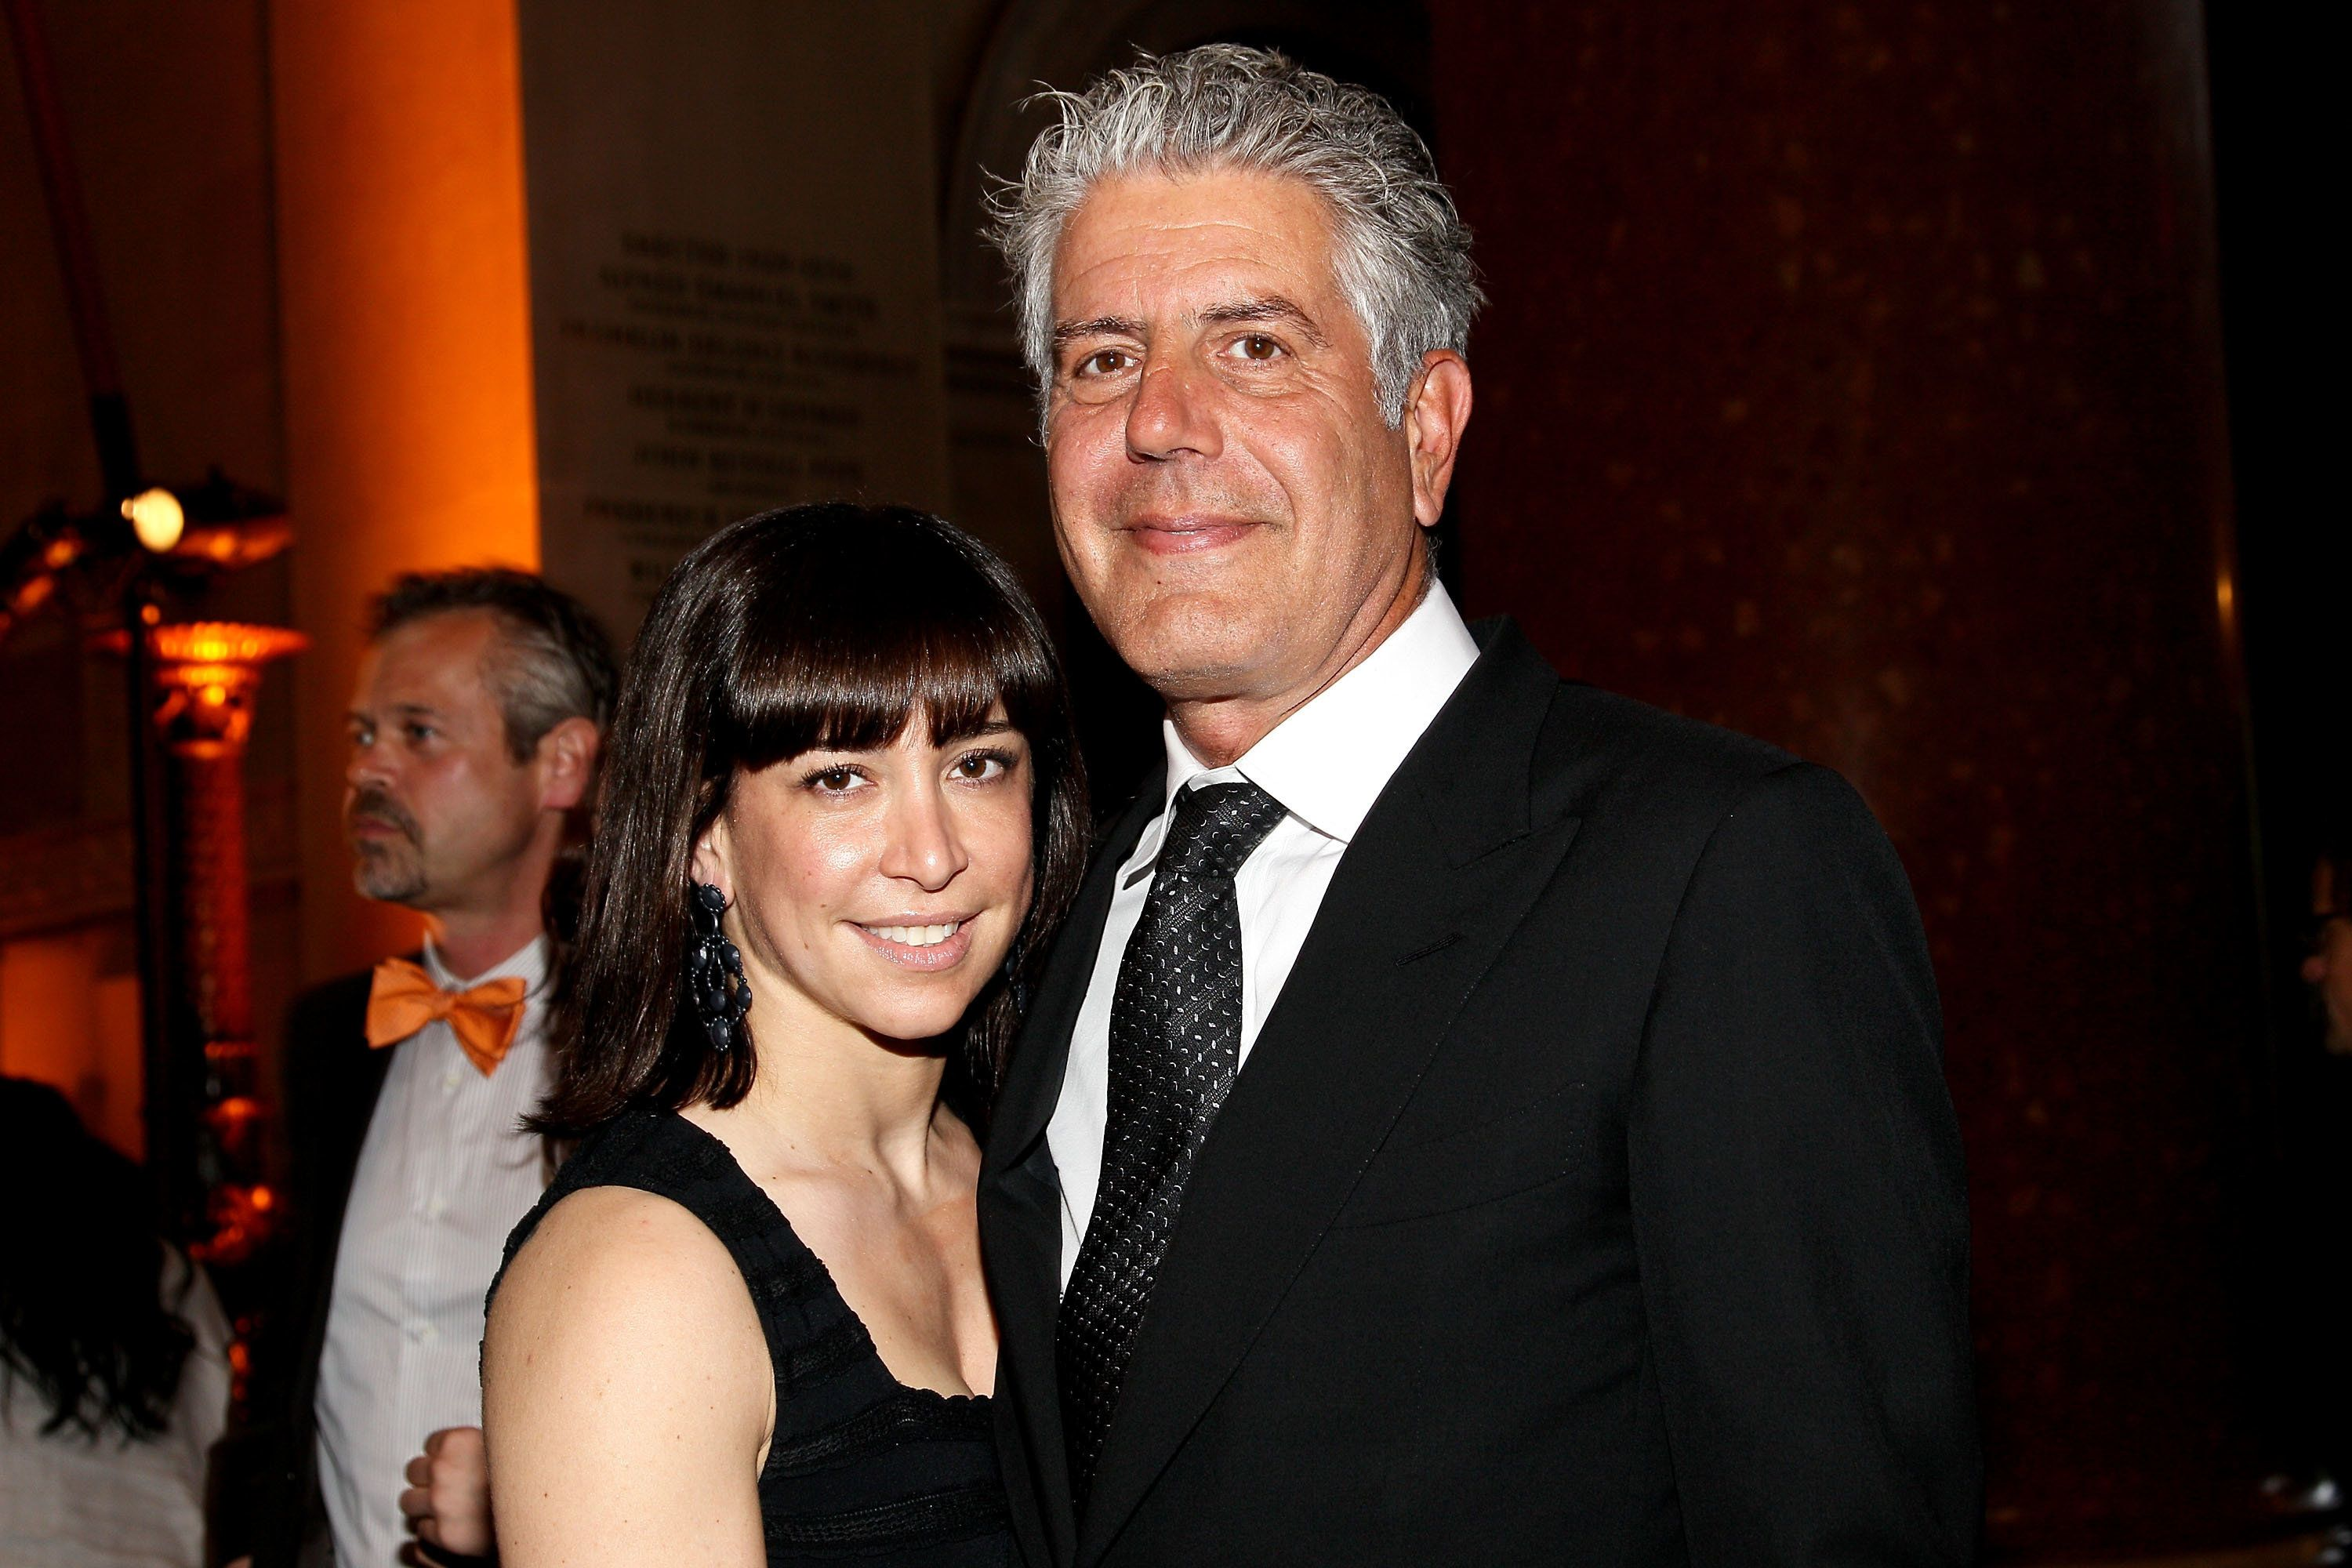 Anthony Bourdain and Ottavia Busia at the 53rd annual CLIO awards at the American Museum of Natural History in 2012.